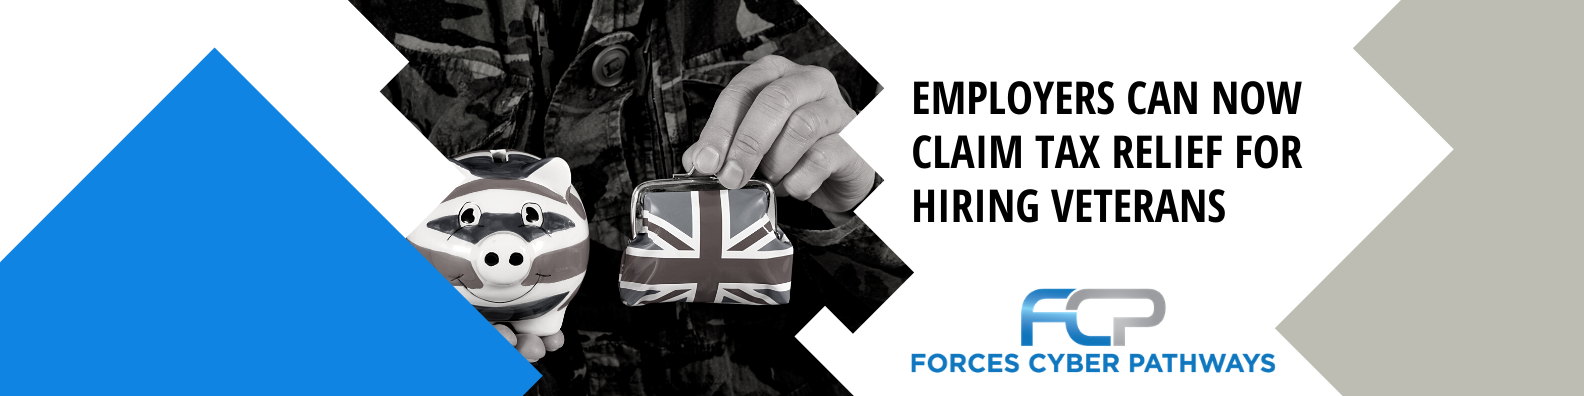 National Insurance contribution relief for employers that hire veterans